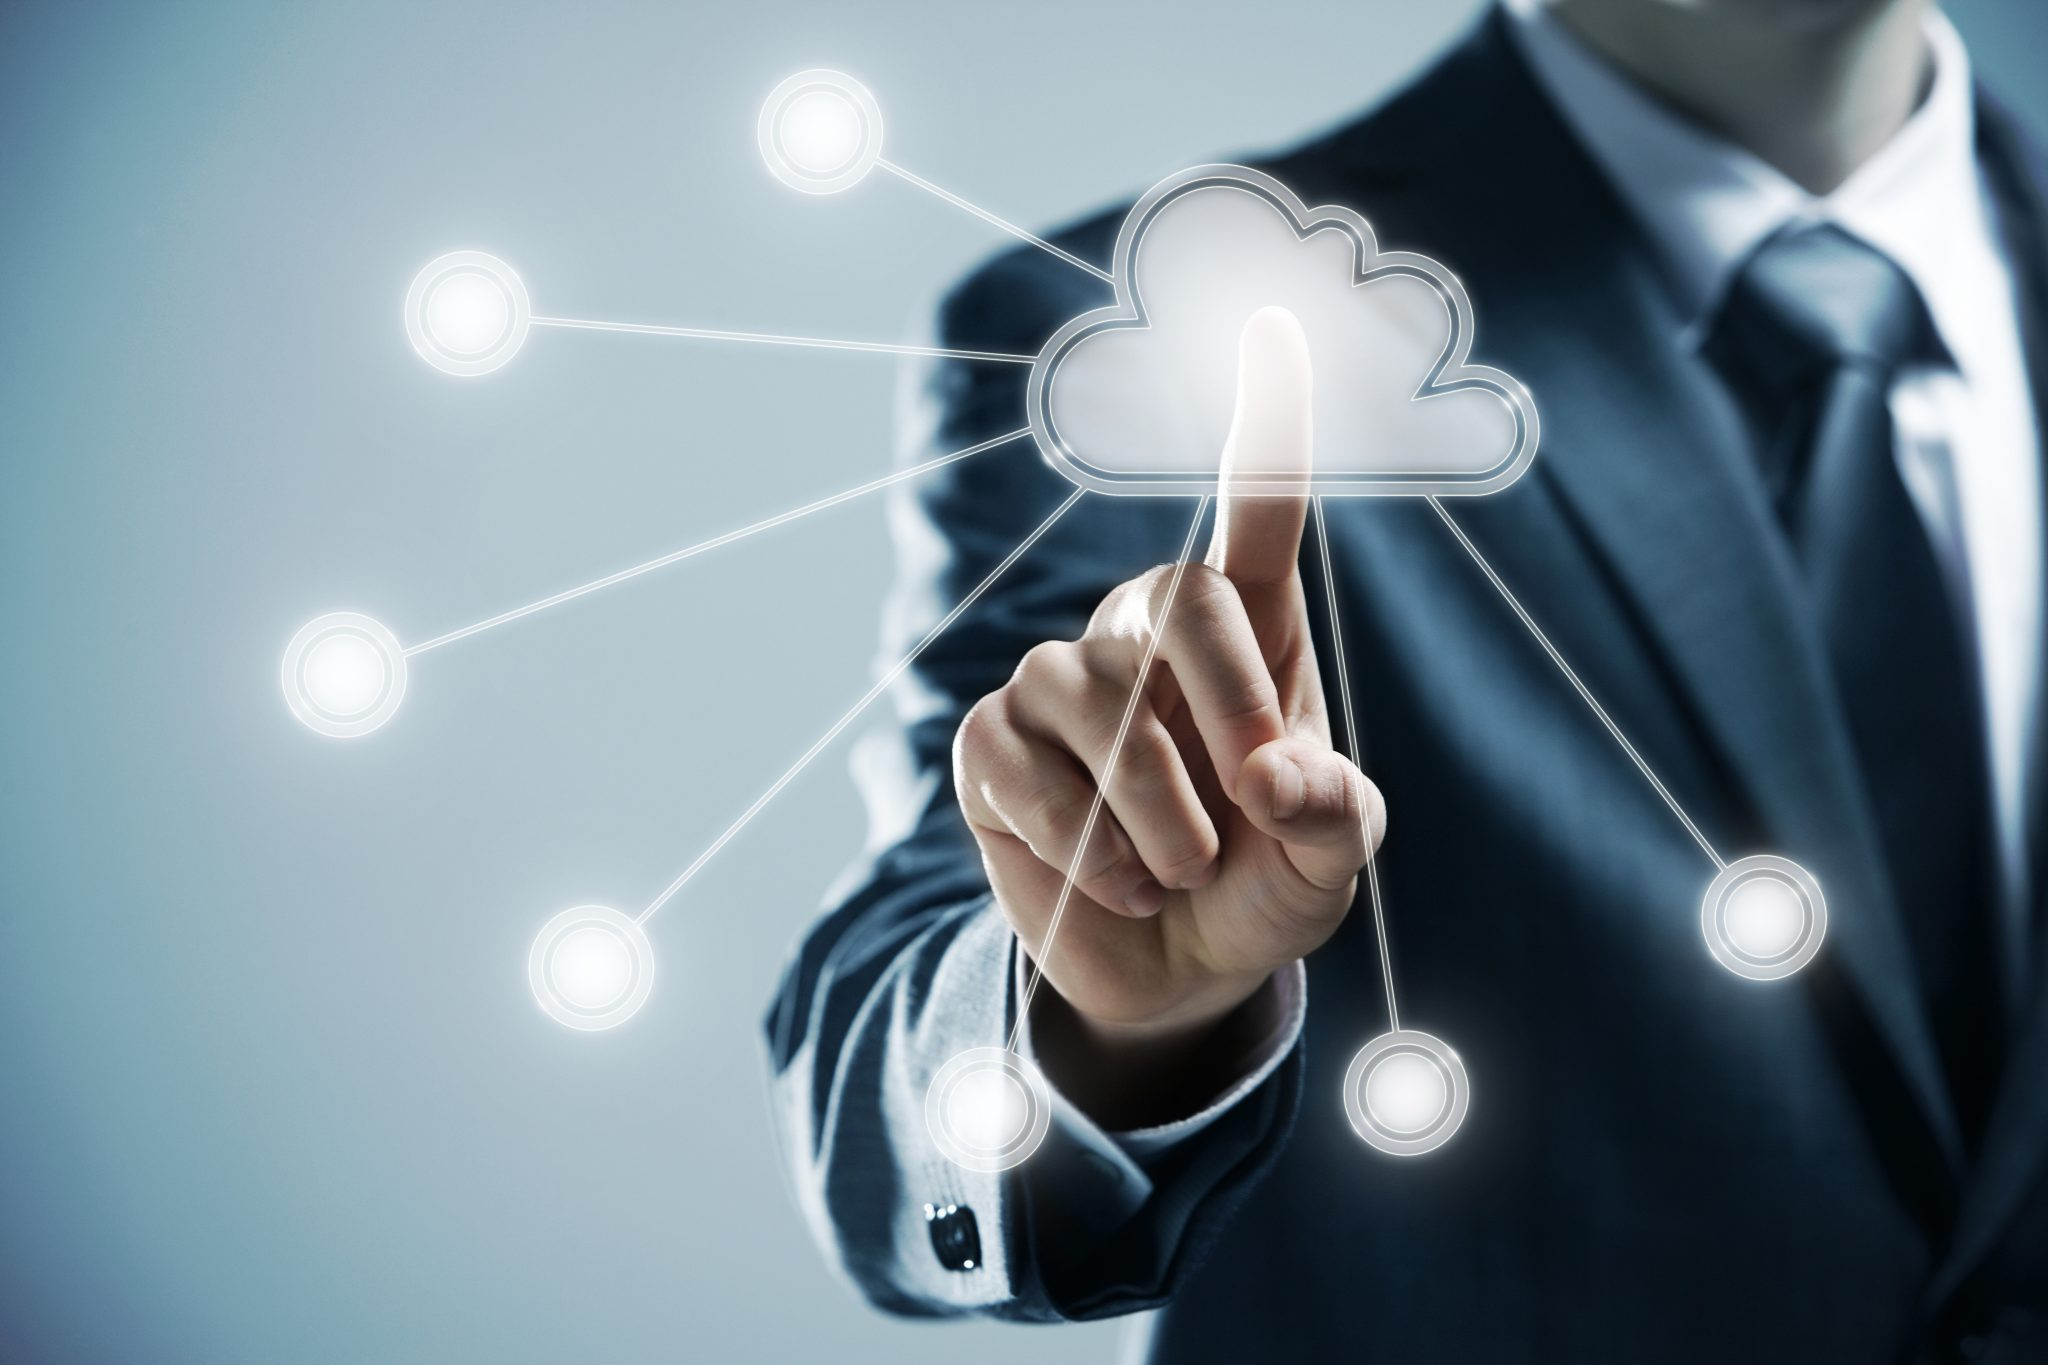 Learn How Great Lakes Pgp In Cloud Computing Can Help Make A Career